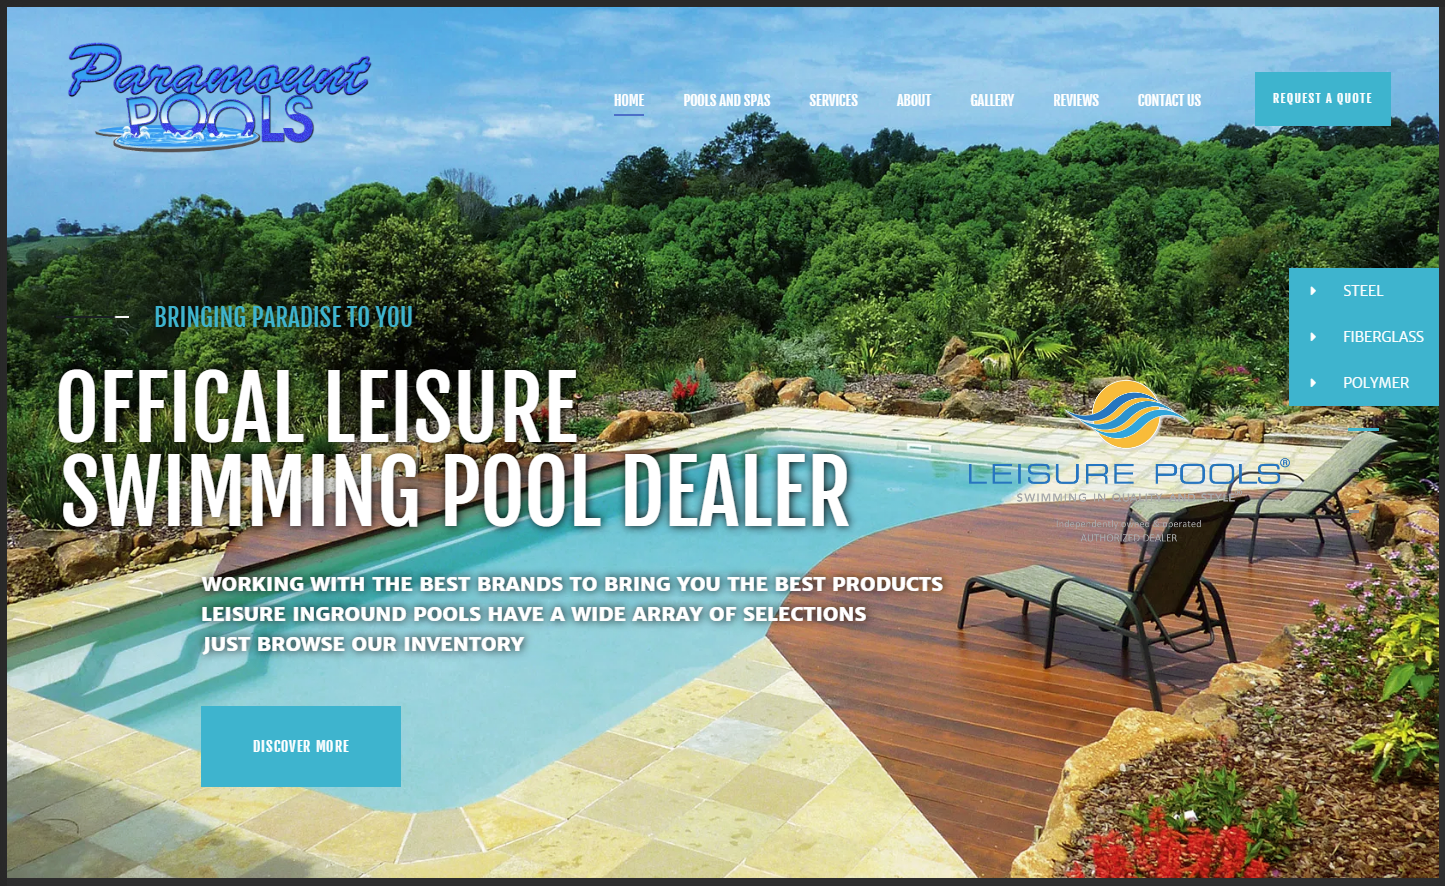 Paramount Pools Ky Featured Photo from Jimnio